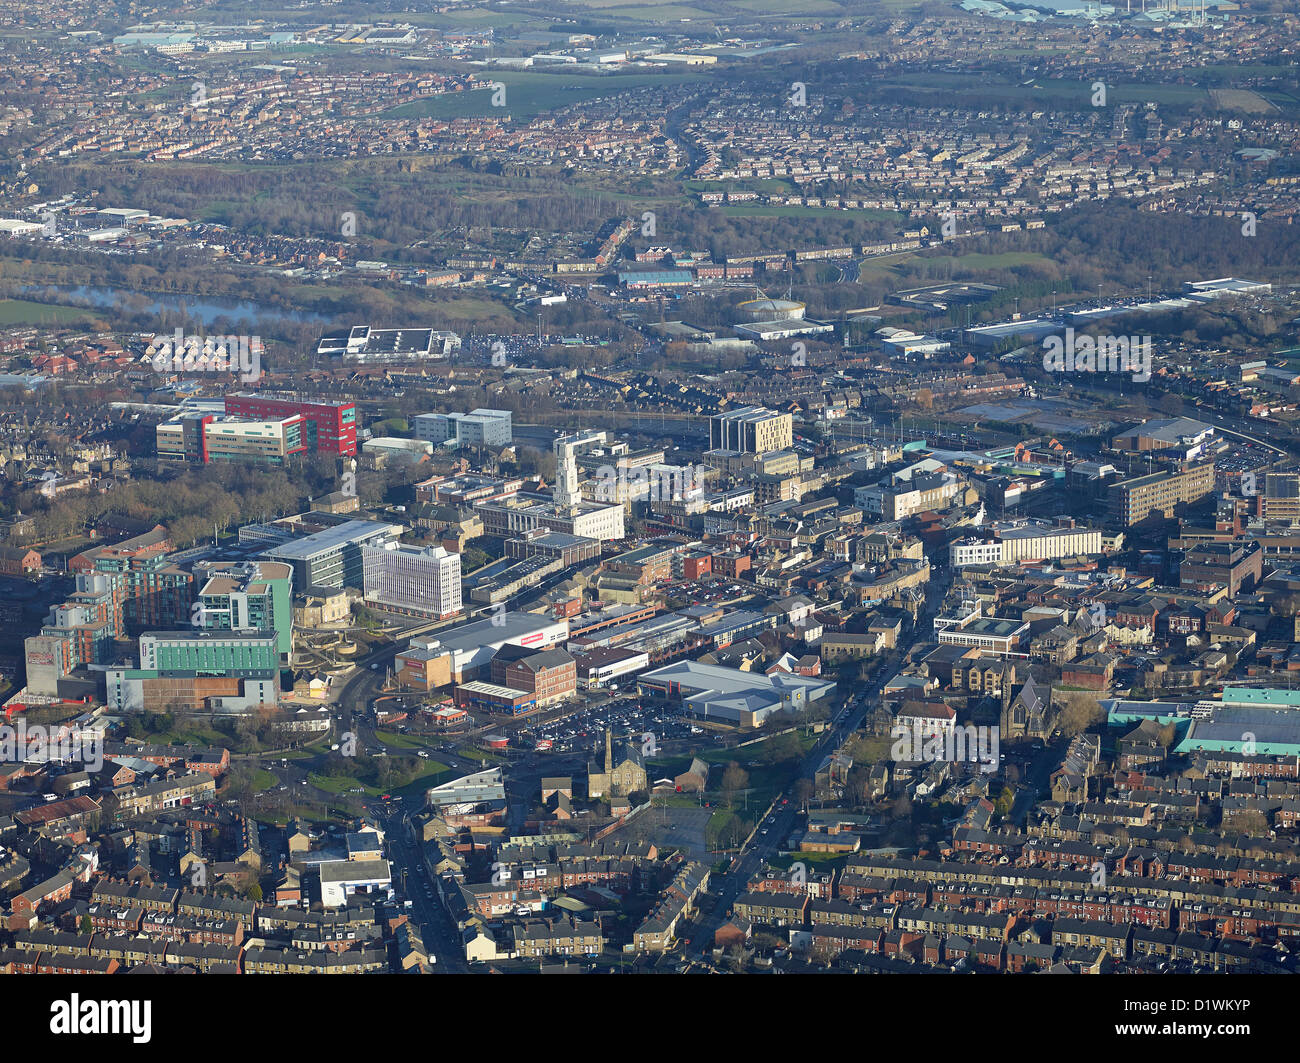 Barnsley Town Centre, South Yorkshire, Northern England - Stock Image